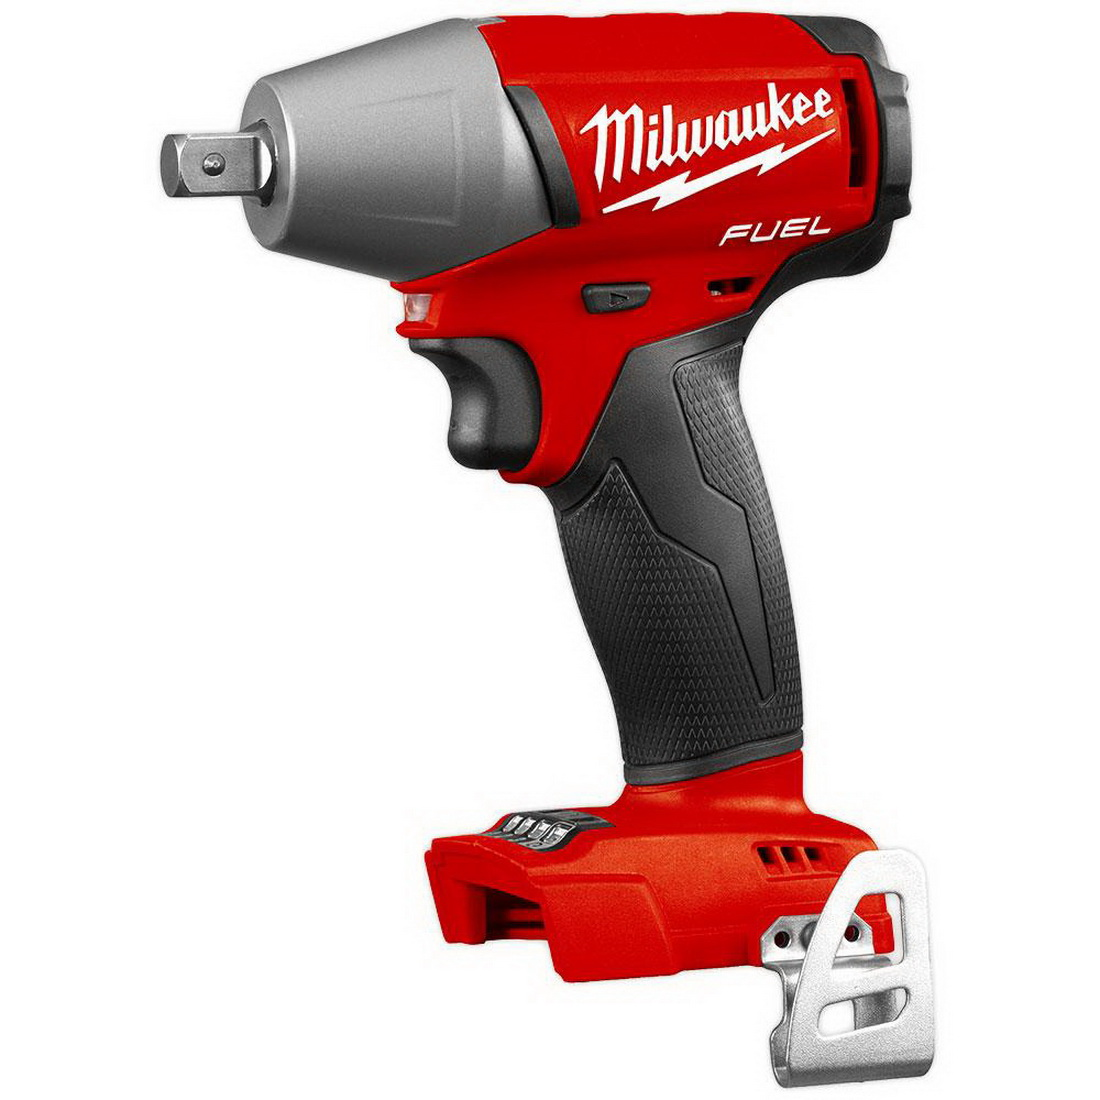 M18 FUEL Li-ion Cordless Impact Wrench Skin Only with Pin Detent 18V 1/2inch M18FIWP12-0